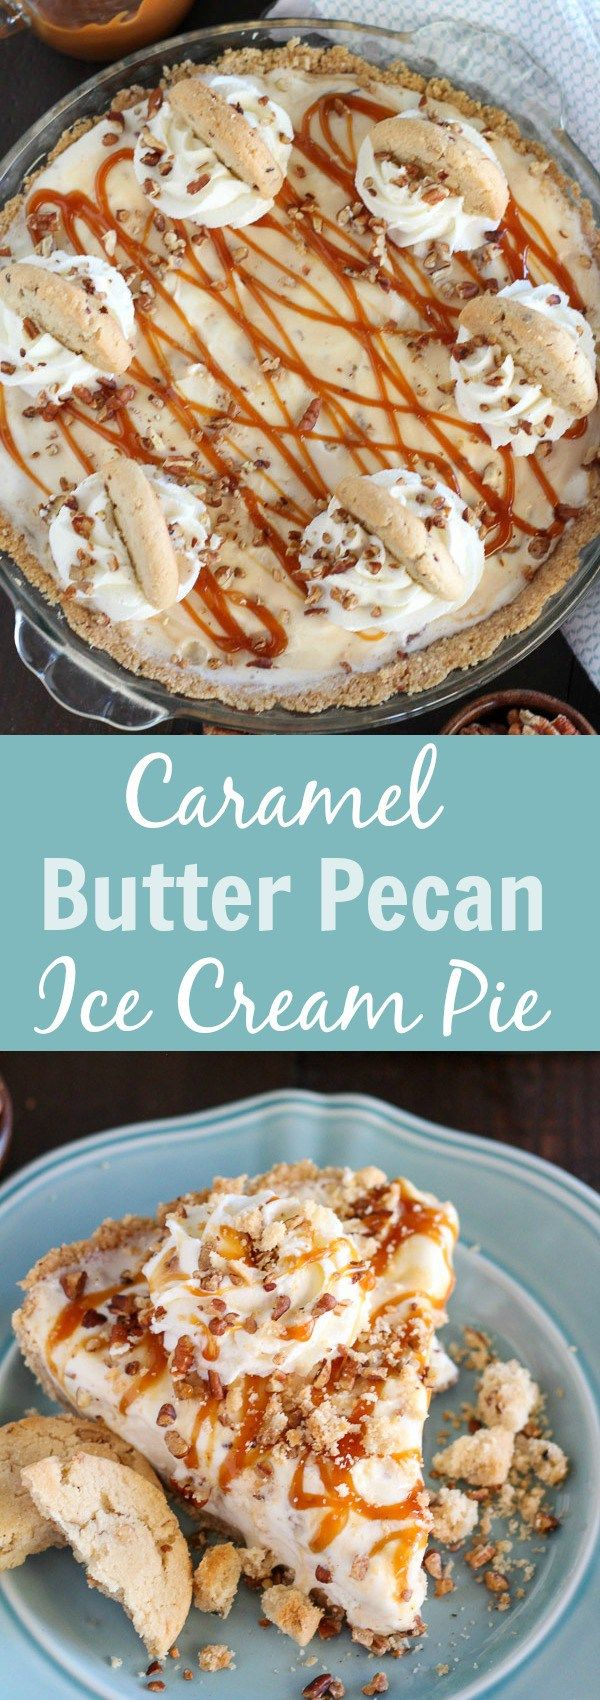 Caramel Butter Pecan Ice Cream Pie - A crushed pecan shortbread cookie crust filled with butter pecan ice cream, and topped with caramel sauce, whipped cream, chopped pecans and pecan shortbread cooki